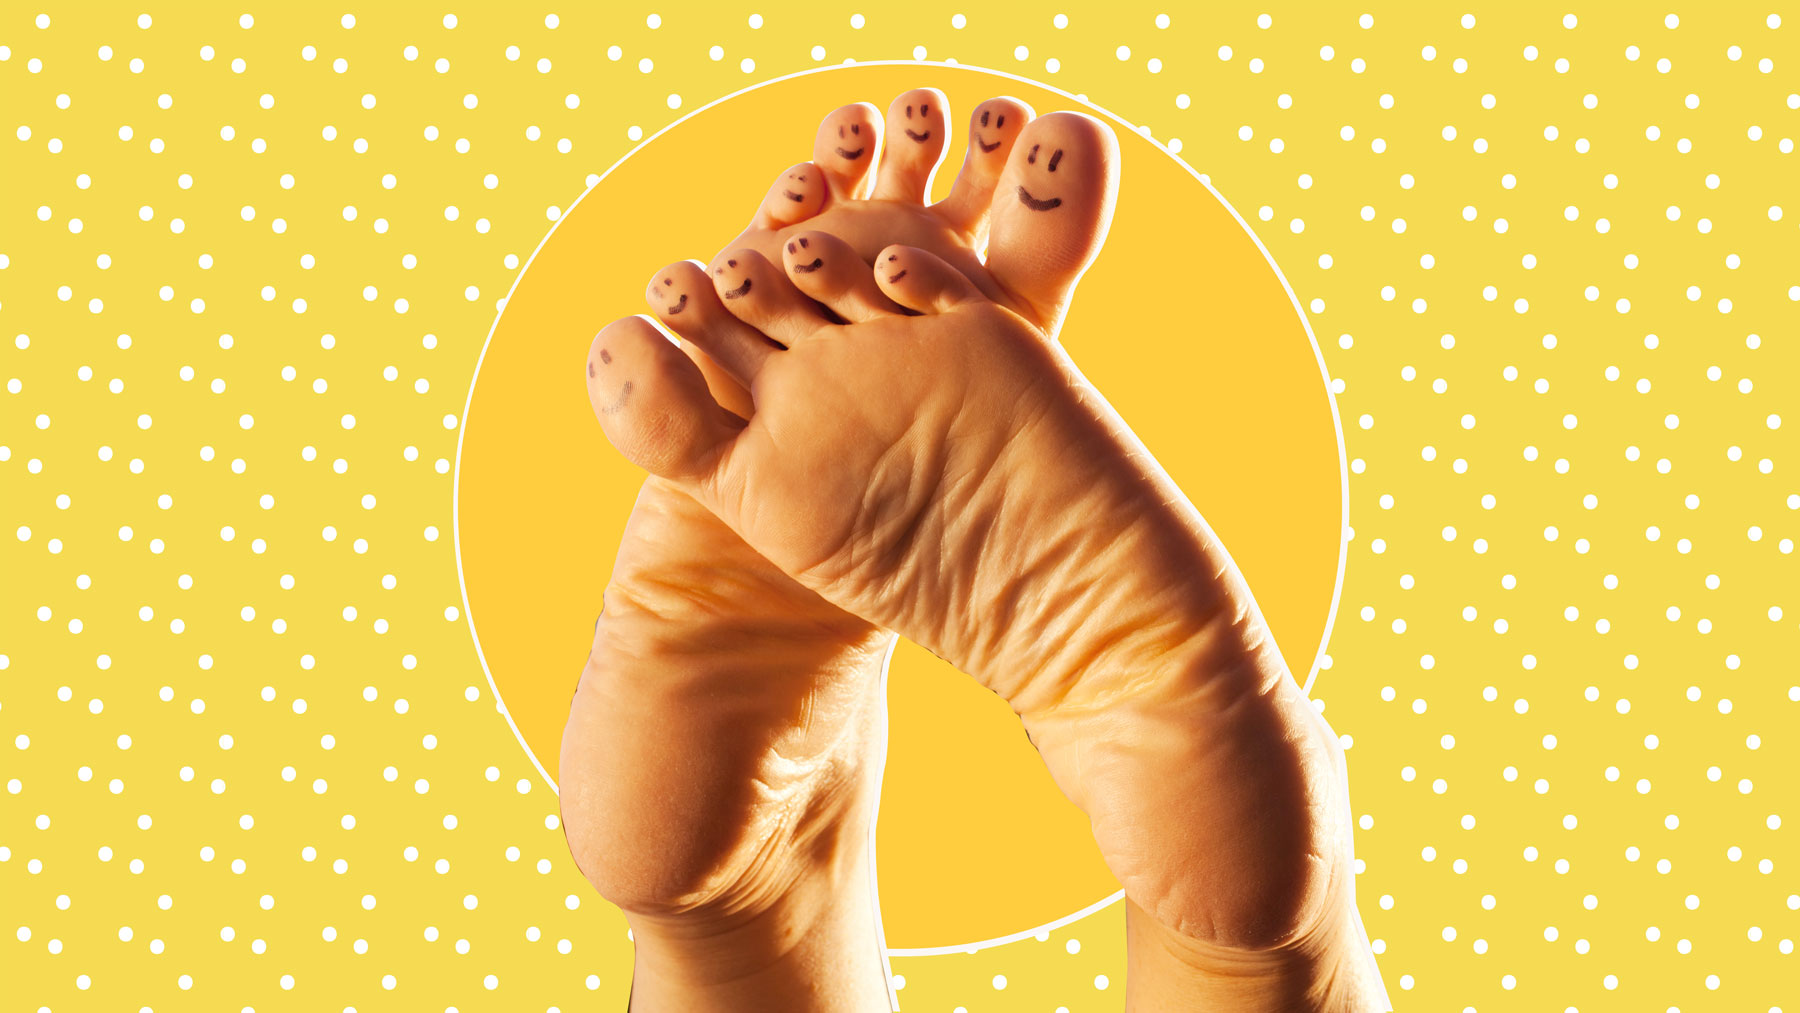 Foot Stretches and Exercises - Strengthen Foot Muscles for Happier Feet